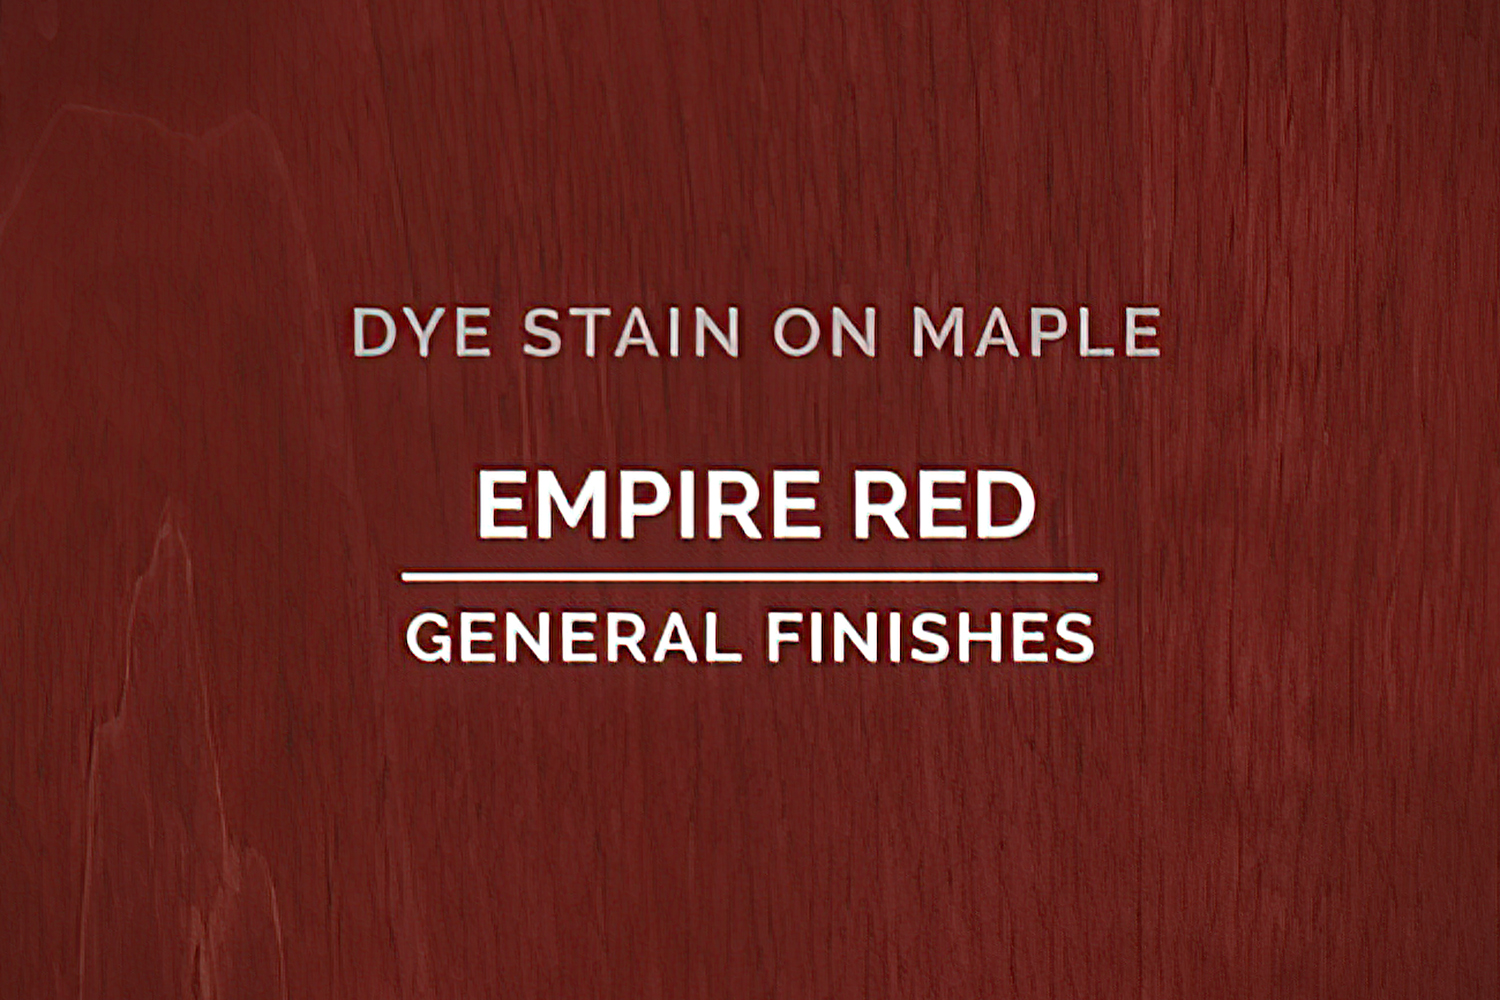 General Finishes Empire Red Dye Pint